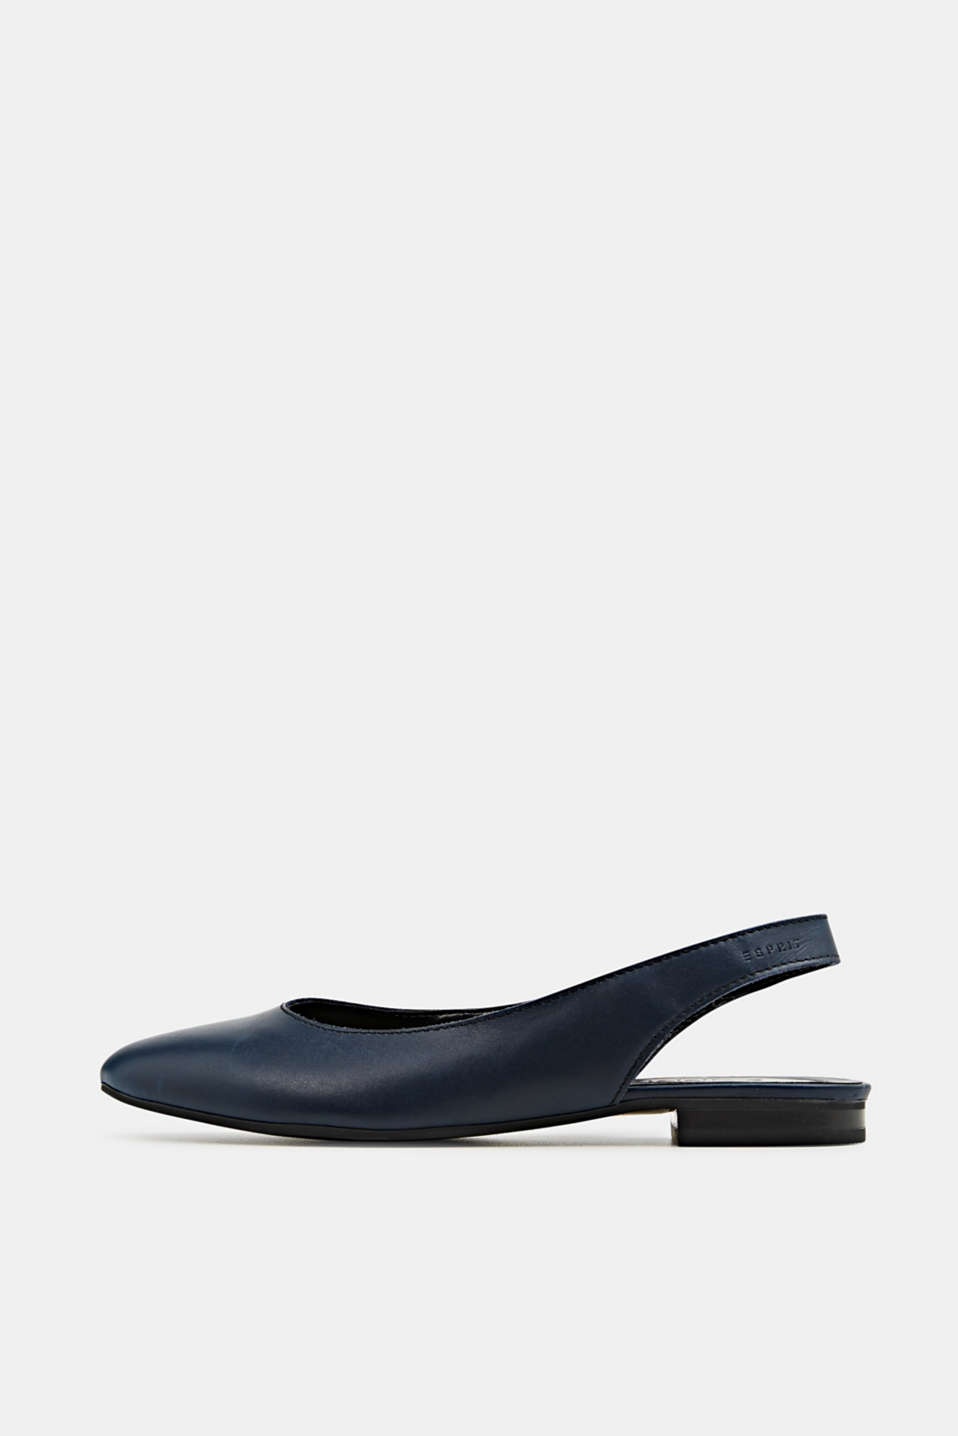 Leather sling back ballerinas, NAVY, detail image number 0